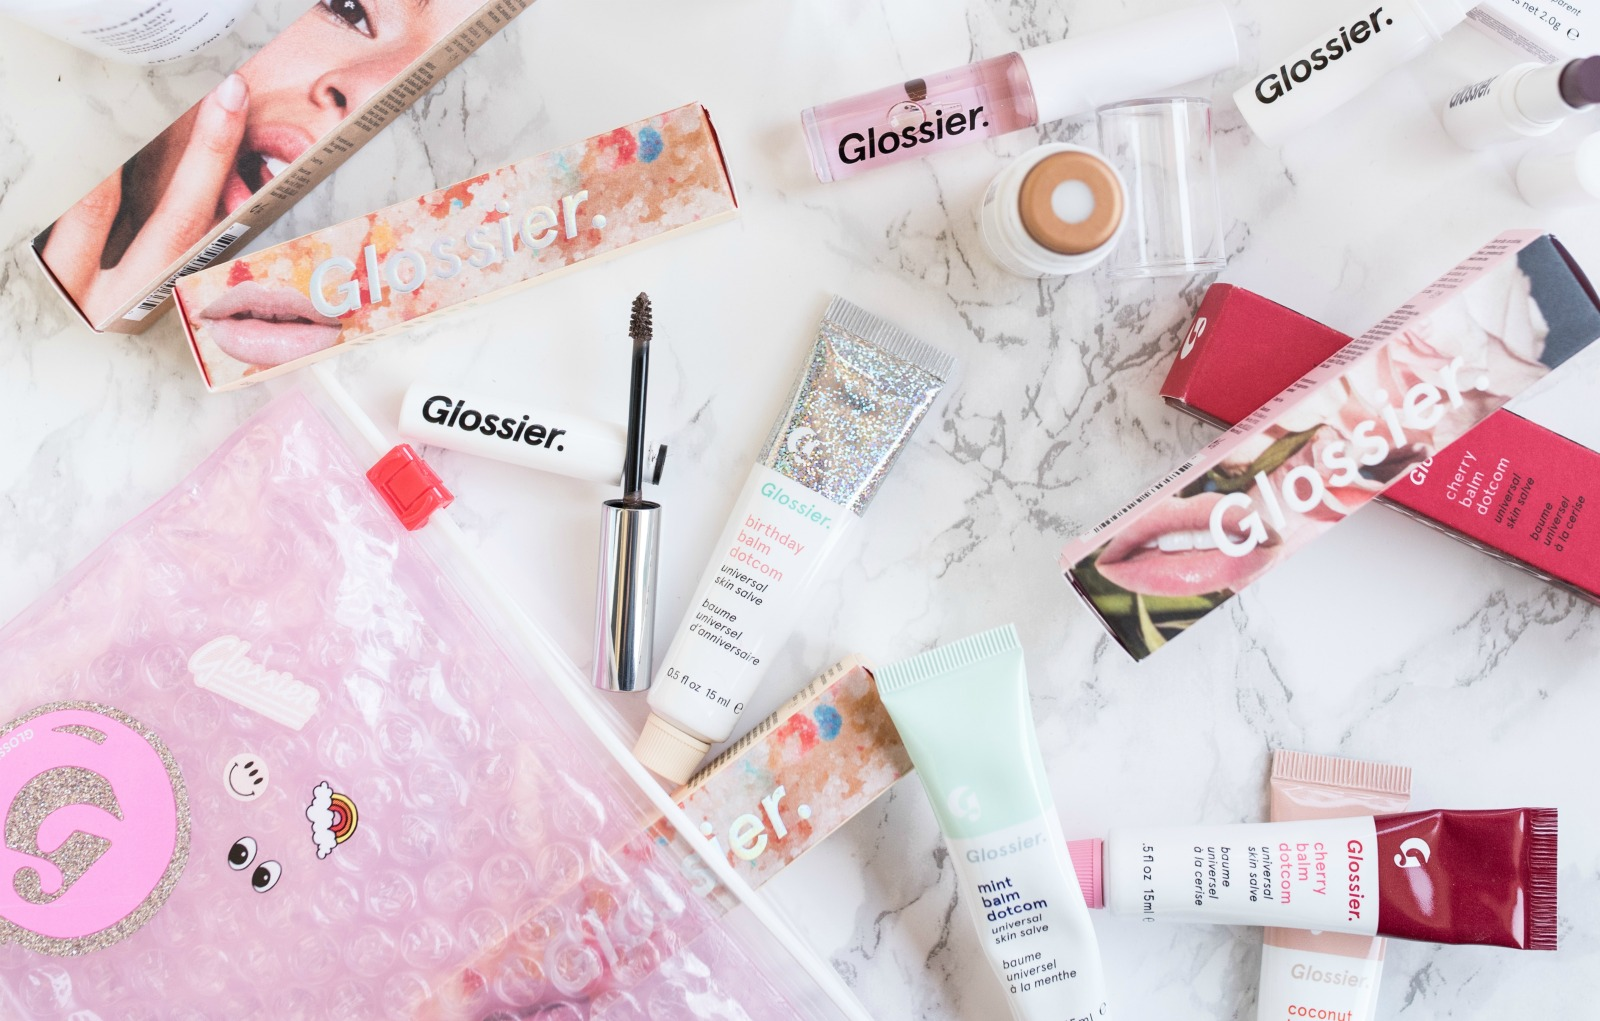 Glossier : Mes Favoris & Glossier Showroom